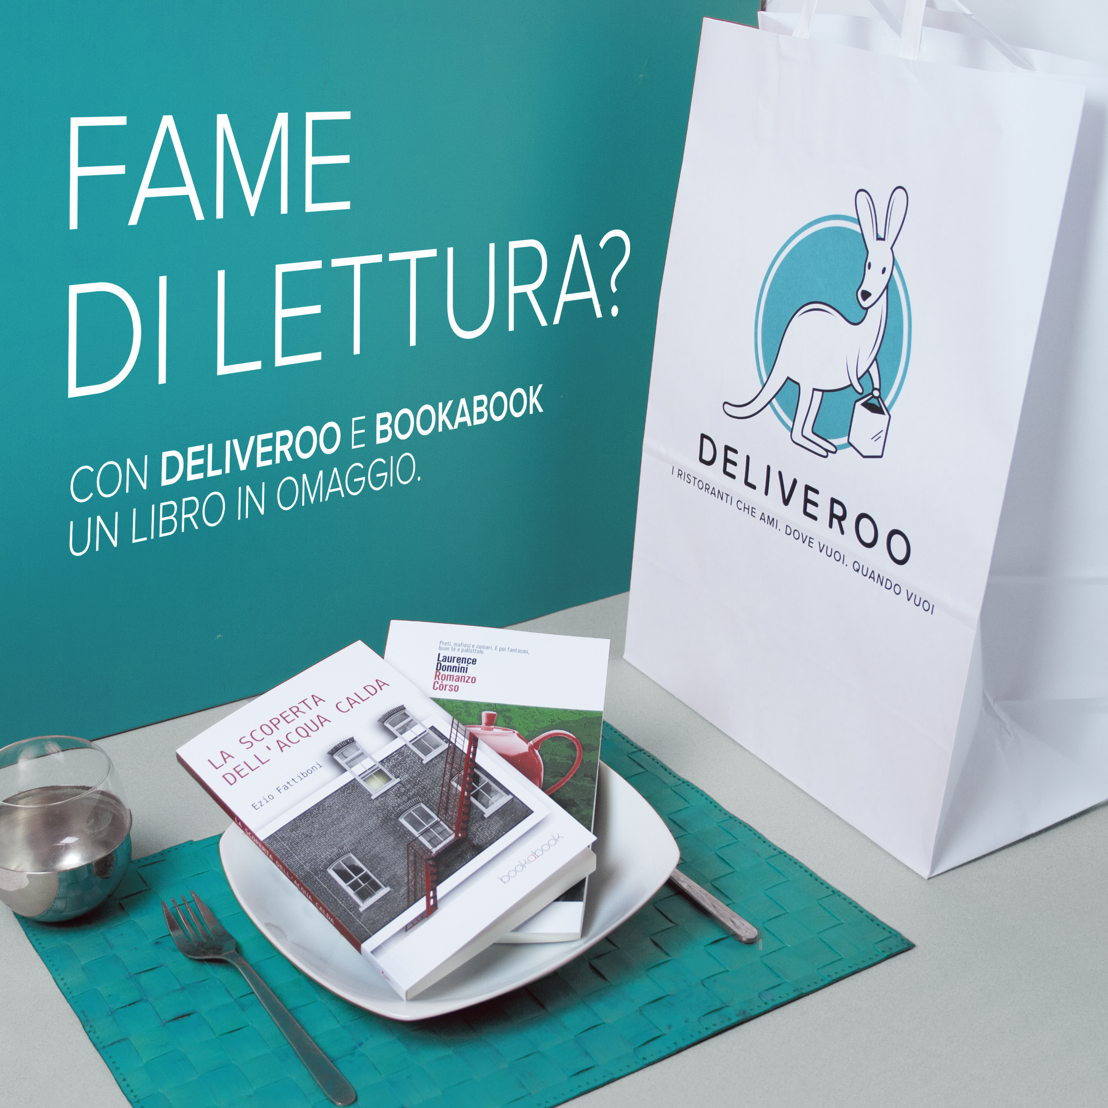 Deliveroo & Bookabook